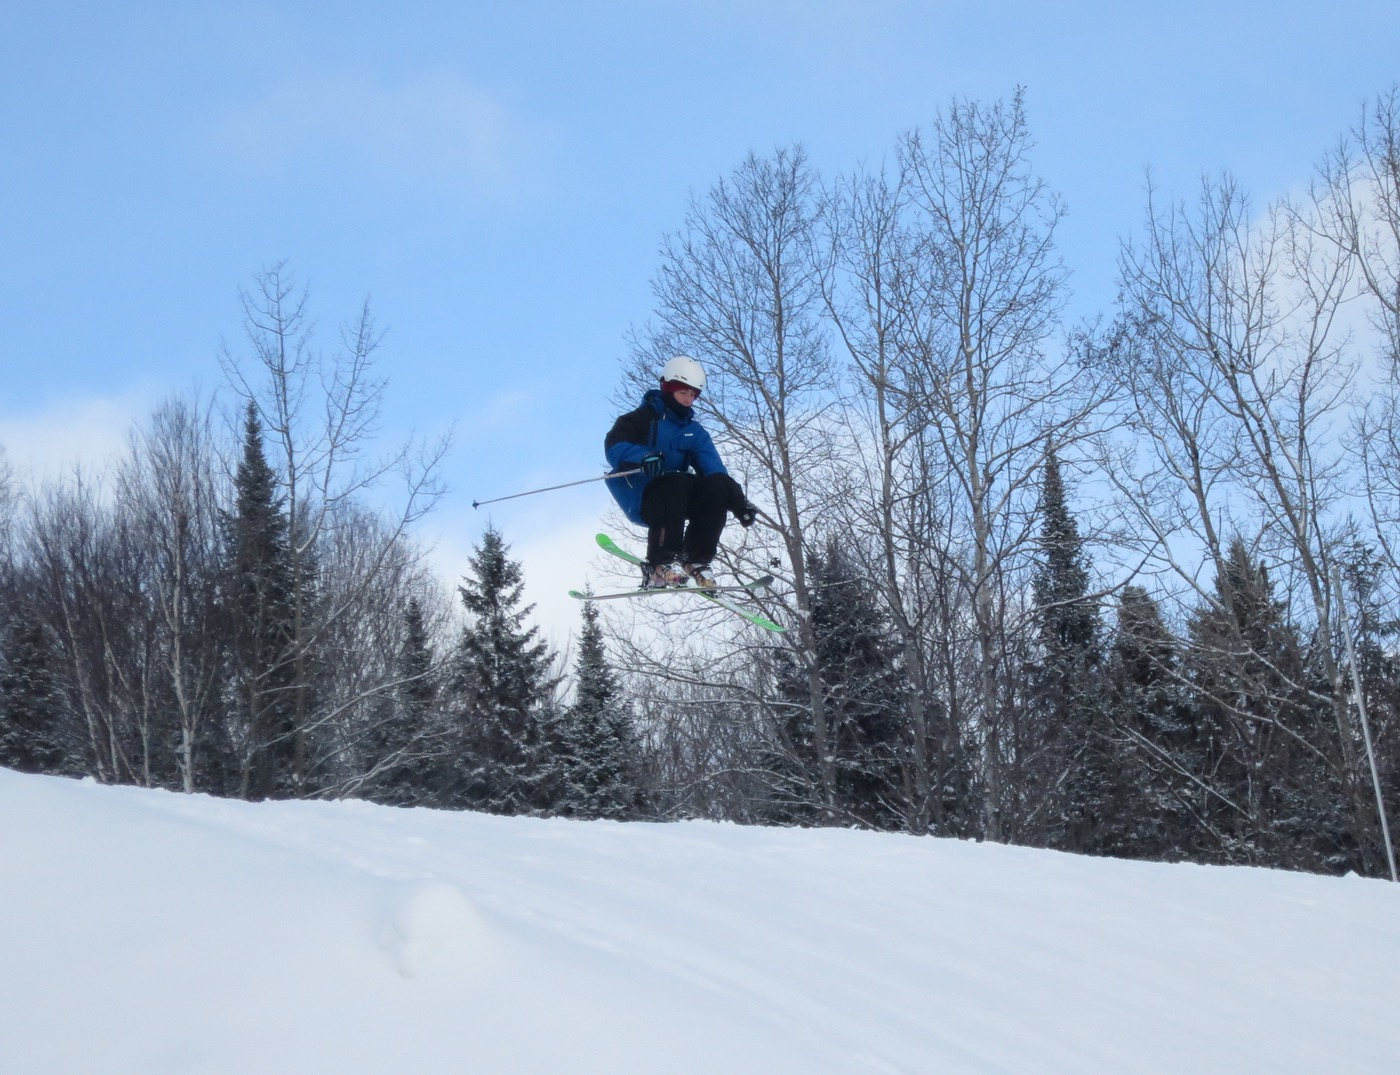 getting air at belle neige